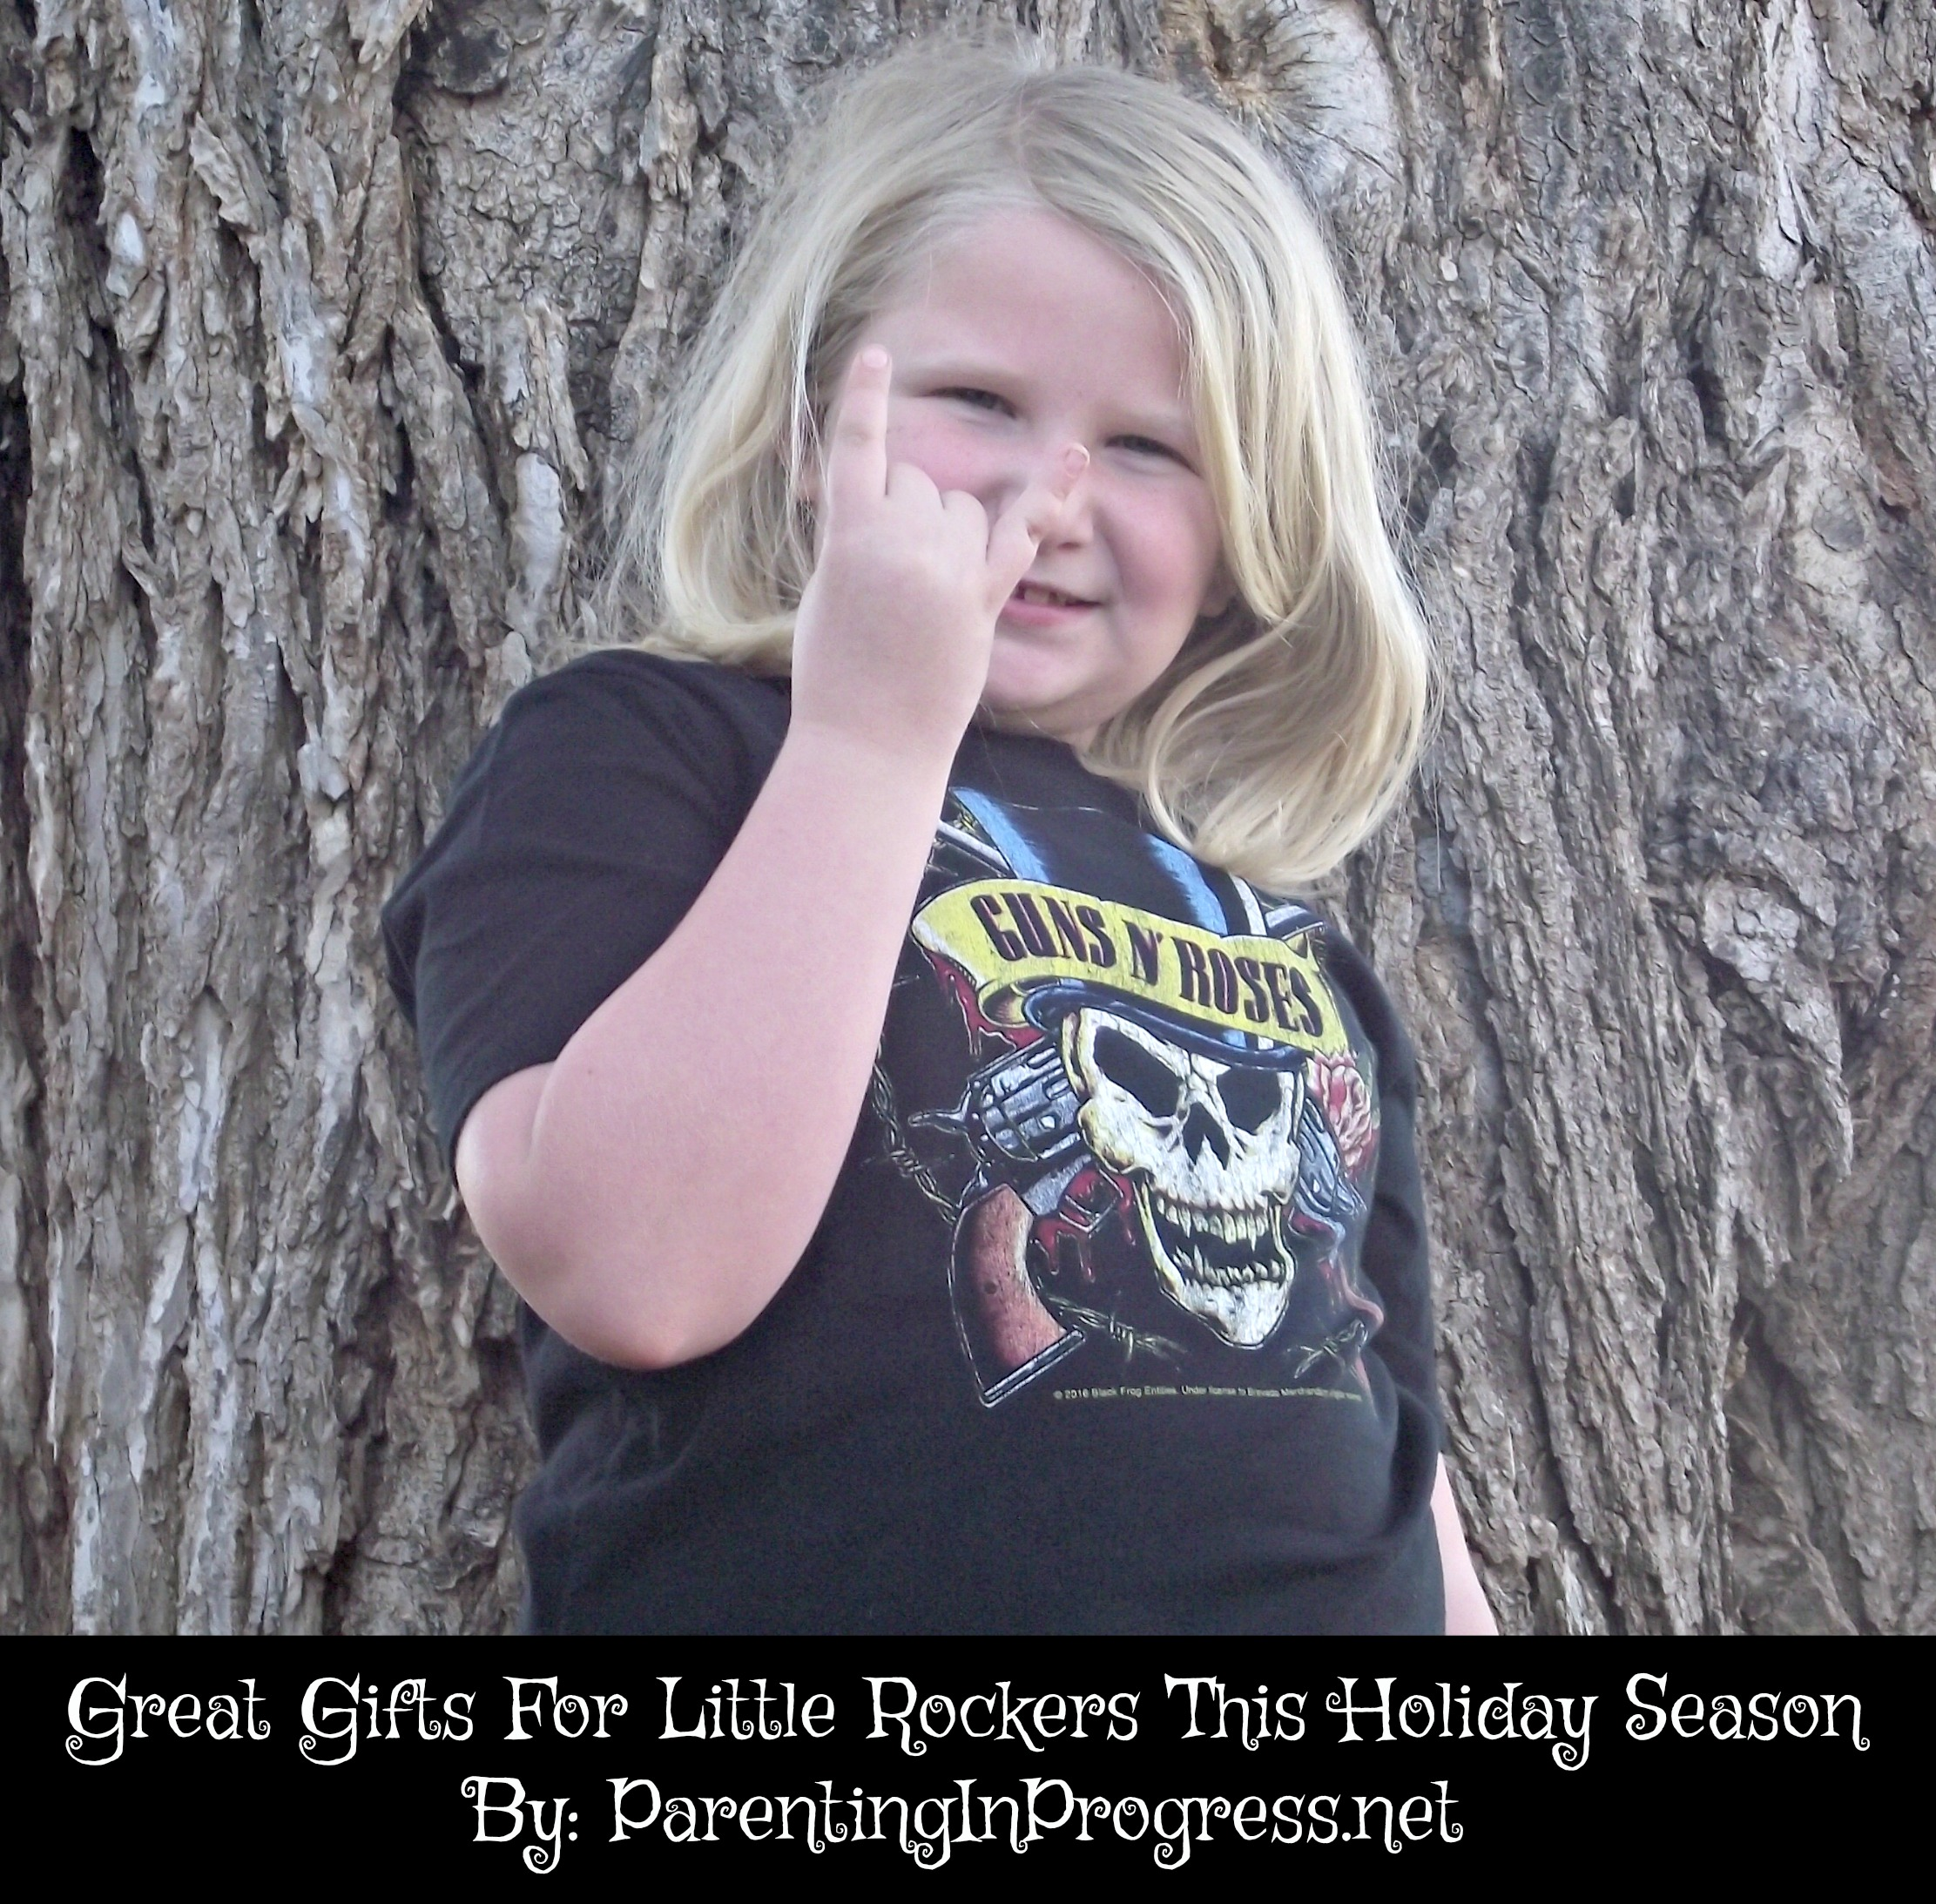 Great Gifts For Little Rockstars this Holiday Season from LittleRockStore.com